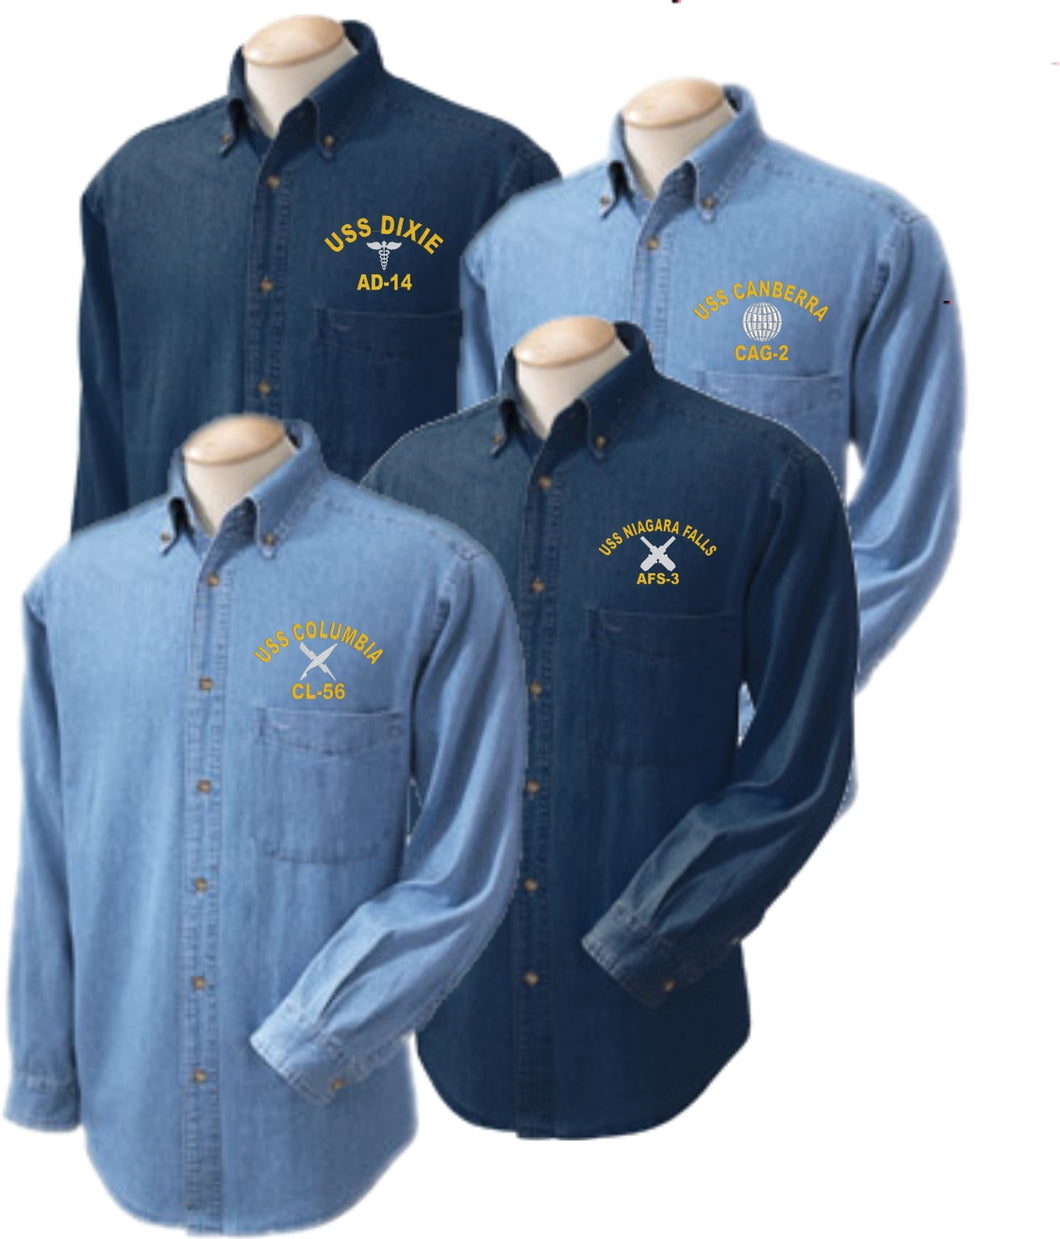 U.S. Navy Direct Embroidered Rating Denim Shirt - Custom Military Apparel & Accessories